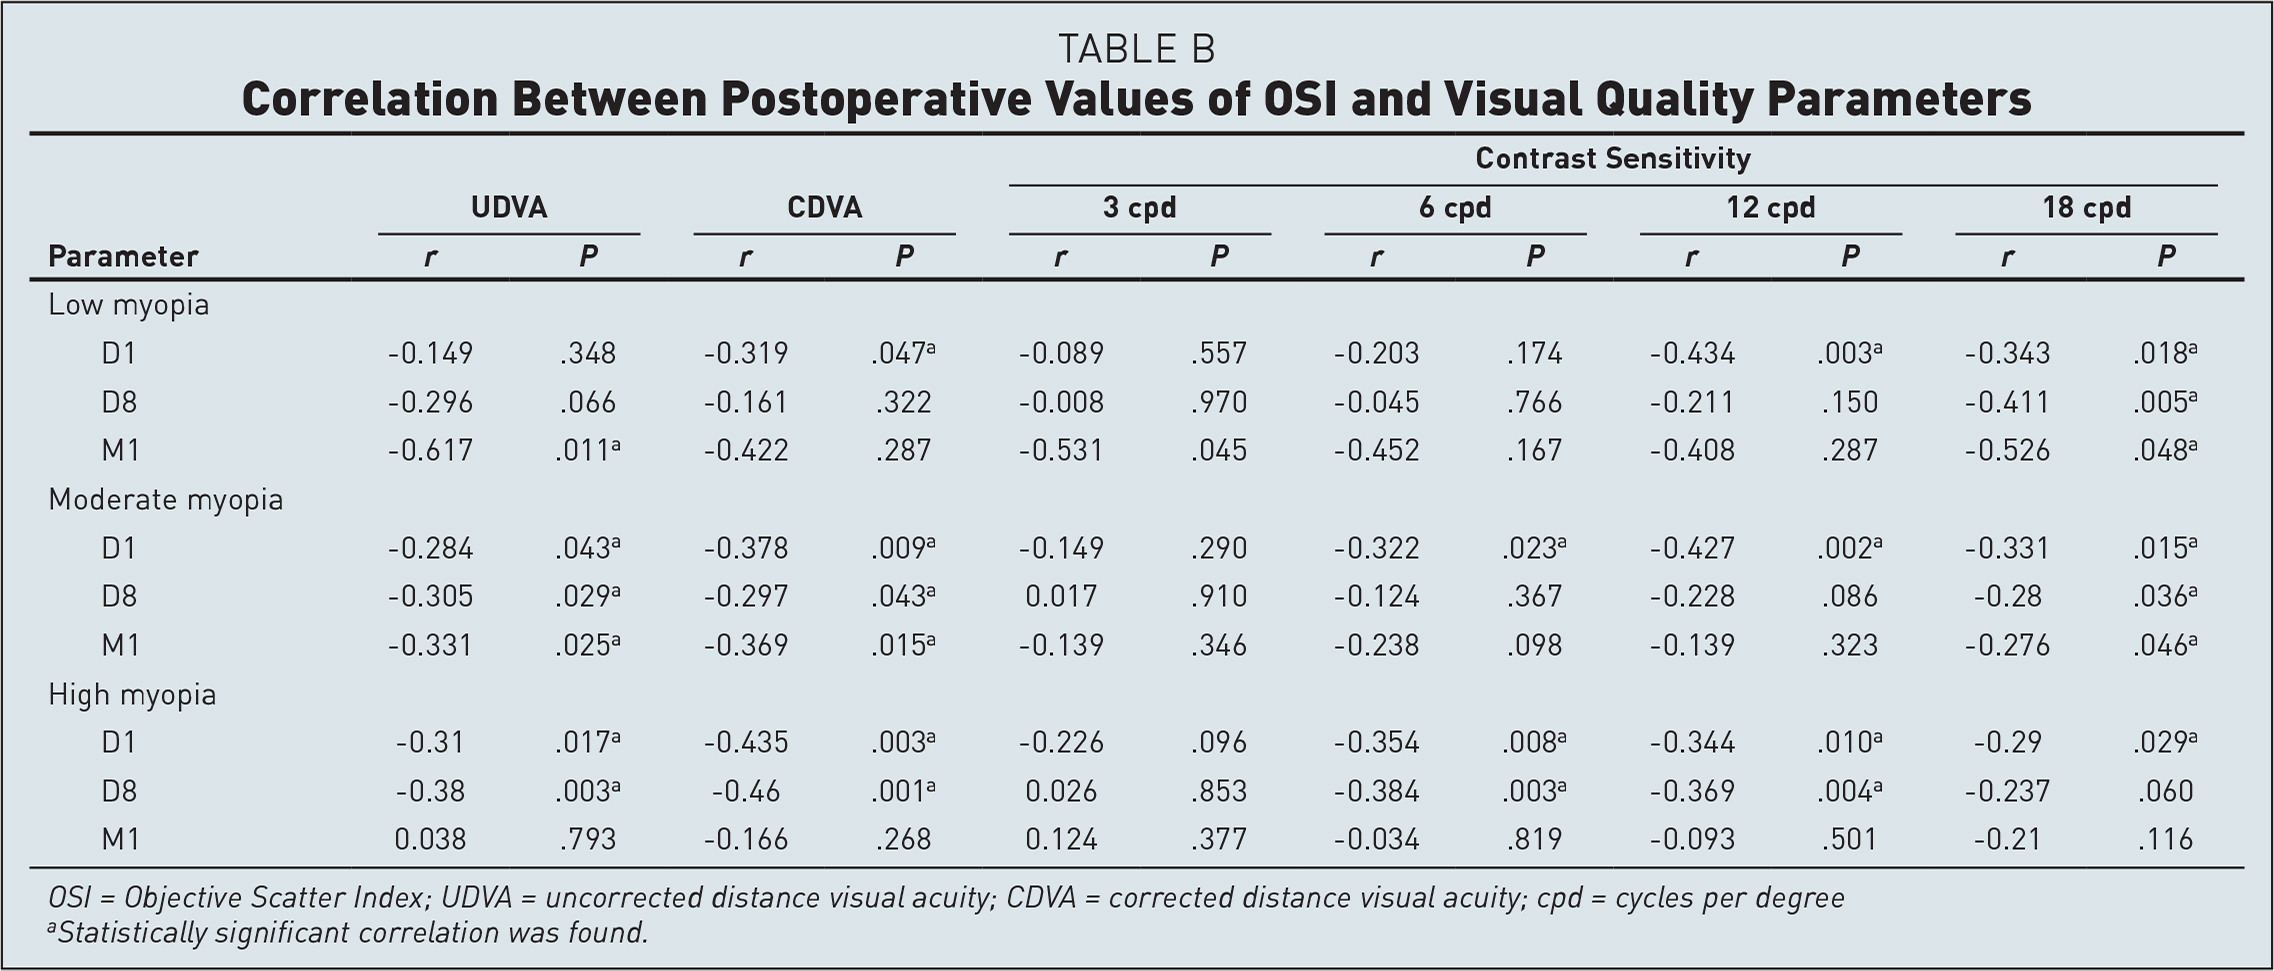 Correlation Between Postoperative Values of OSI and Visual Quality Parameters